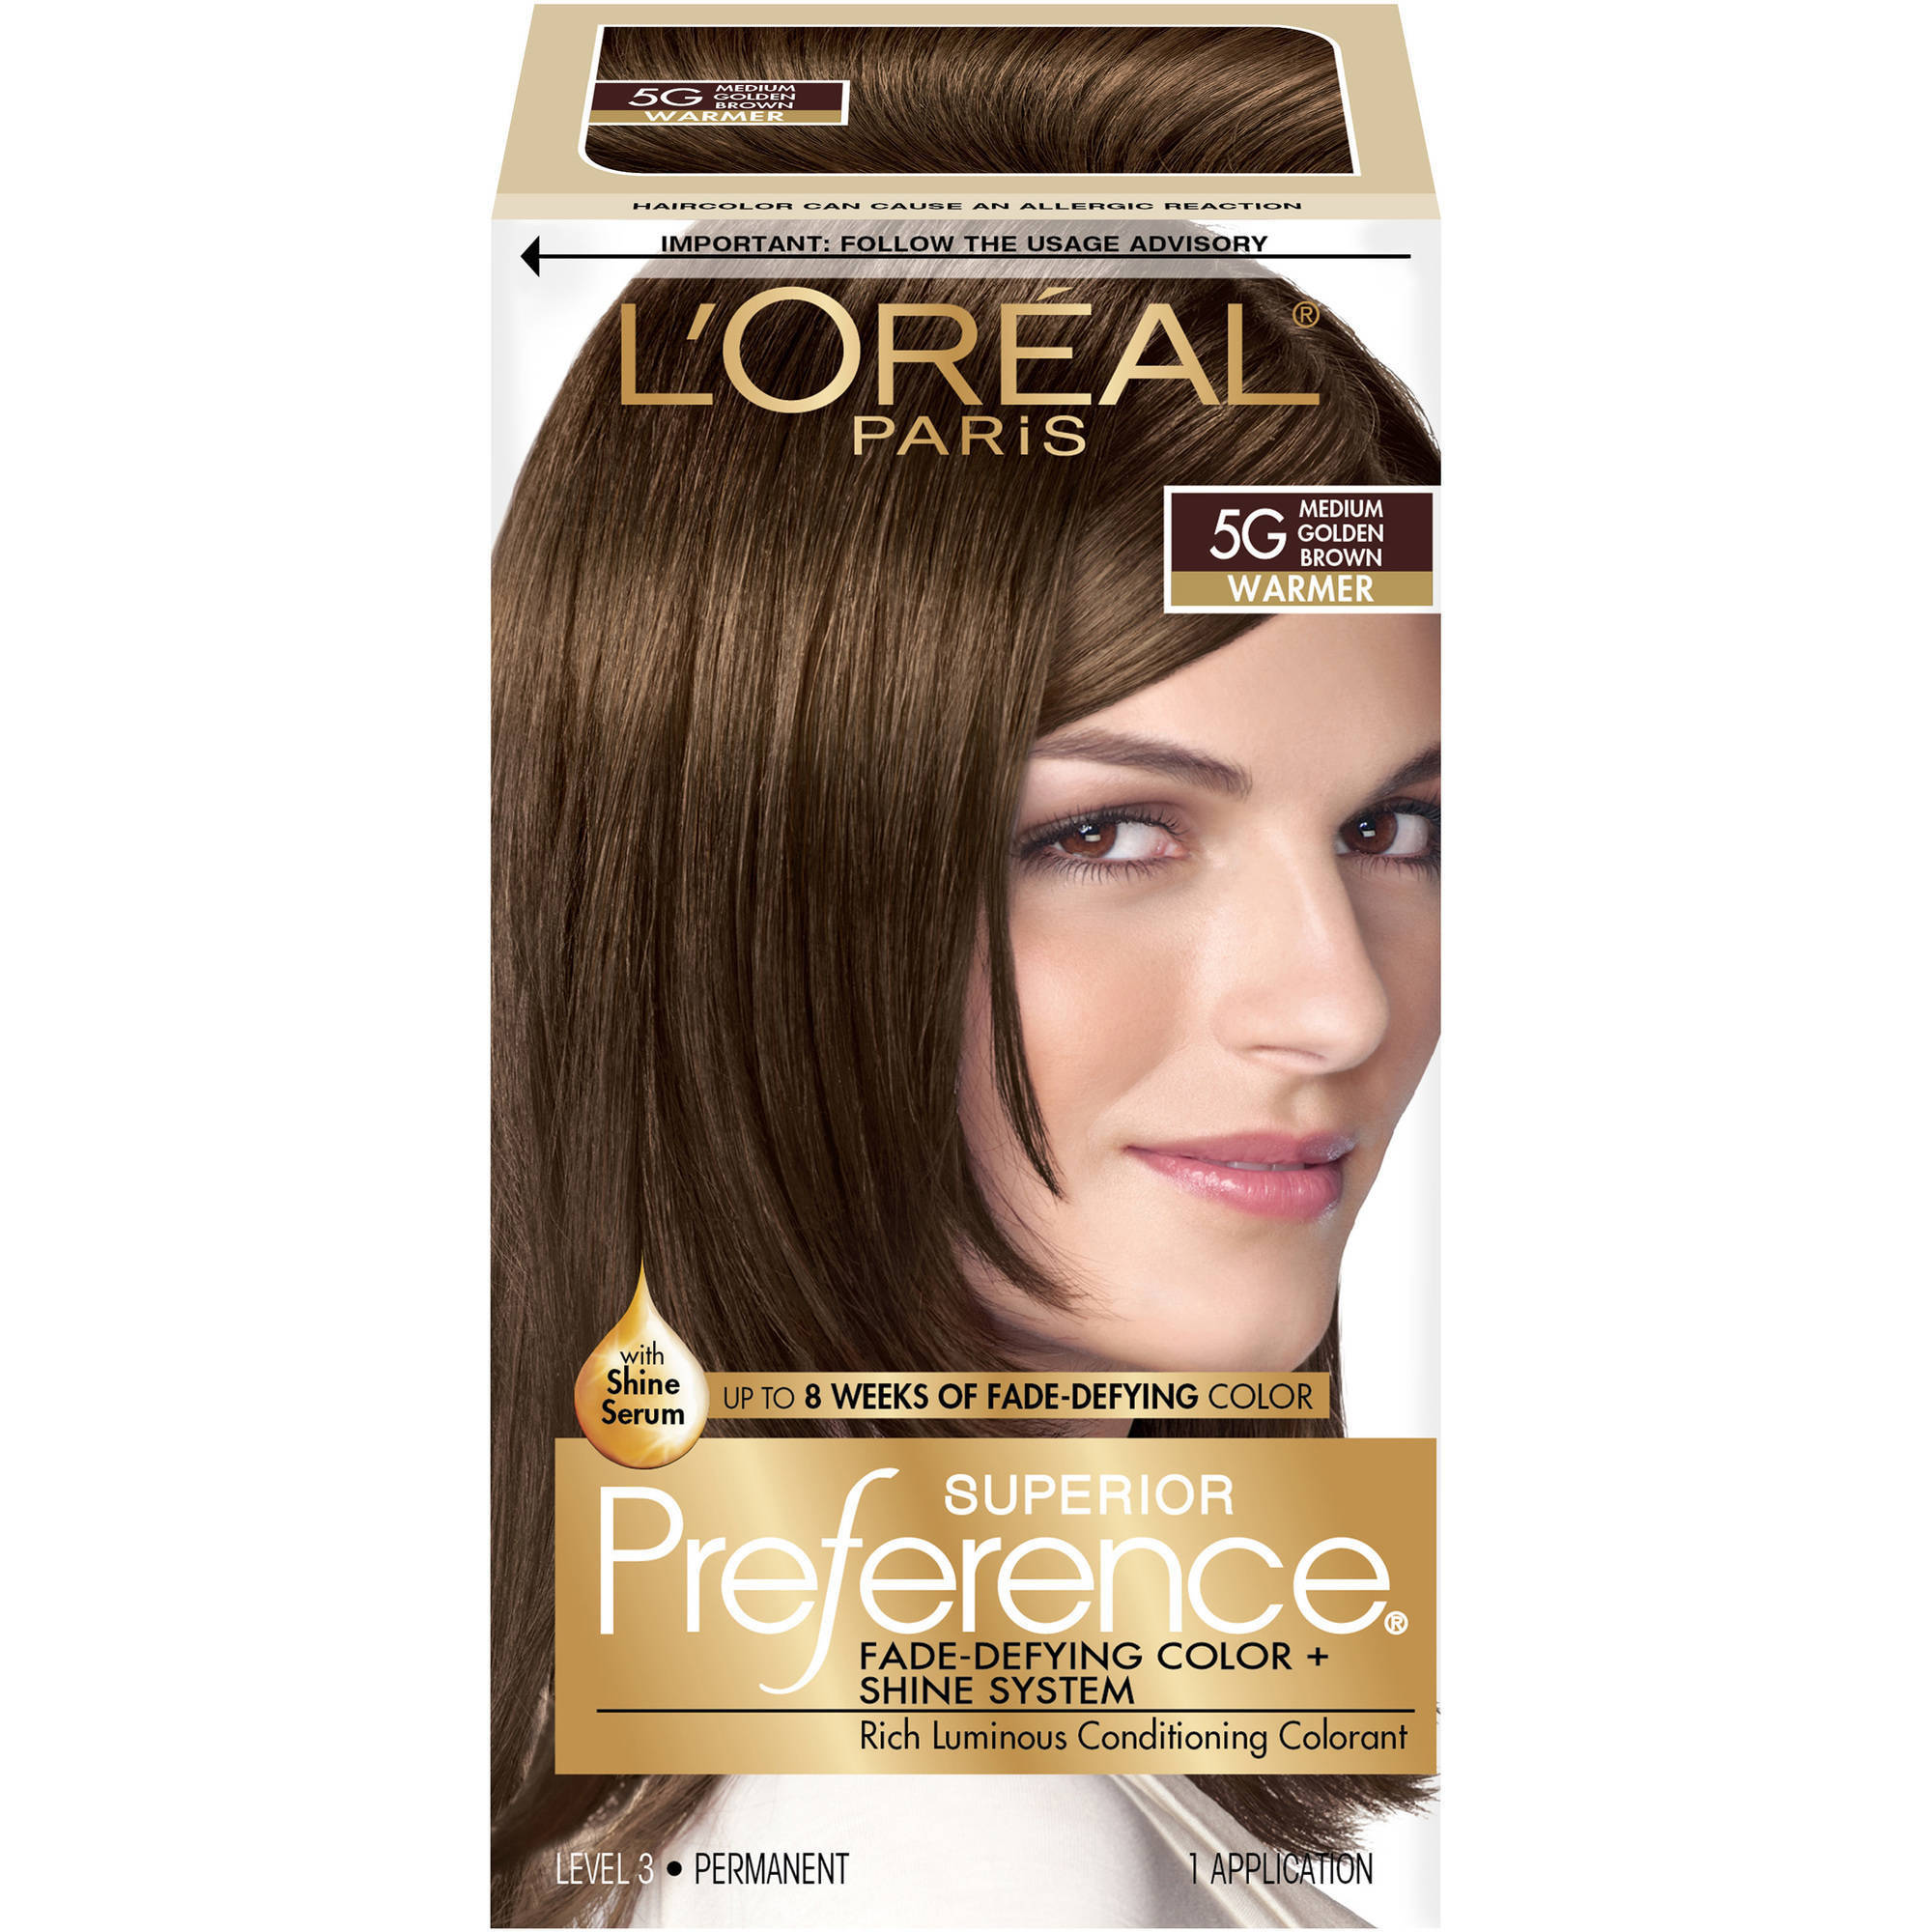 L'Oreal Paris Superior Preference Fade-Defying Color   Shine System